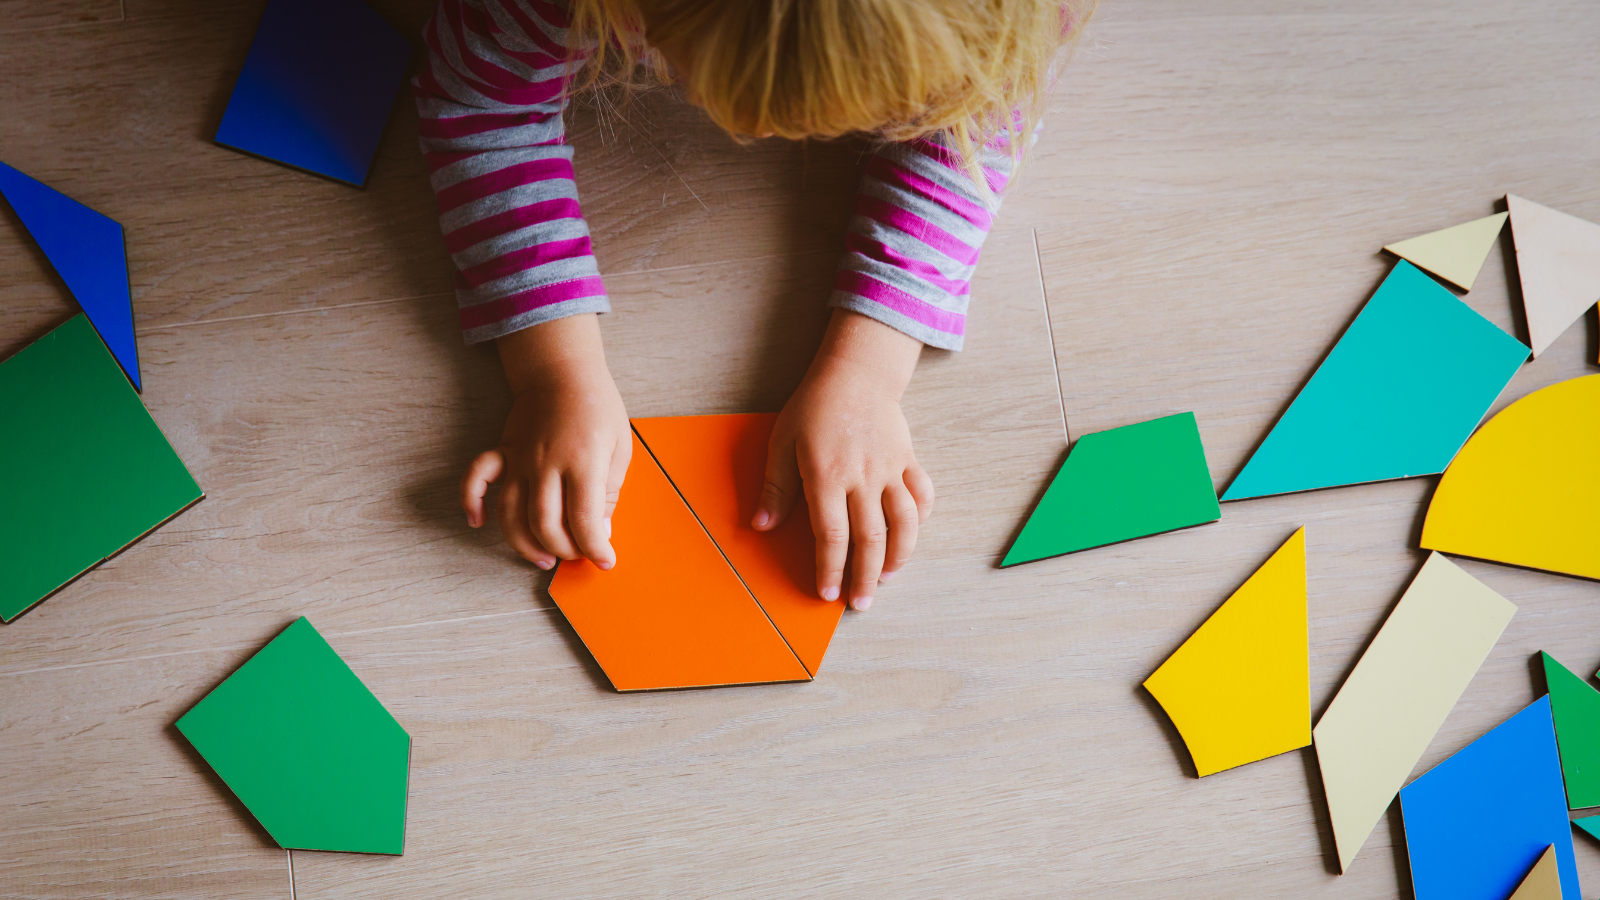 Daycare Names: A List of 50+ Inspiring Ideas for Your Center